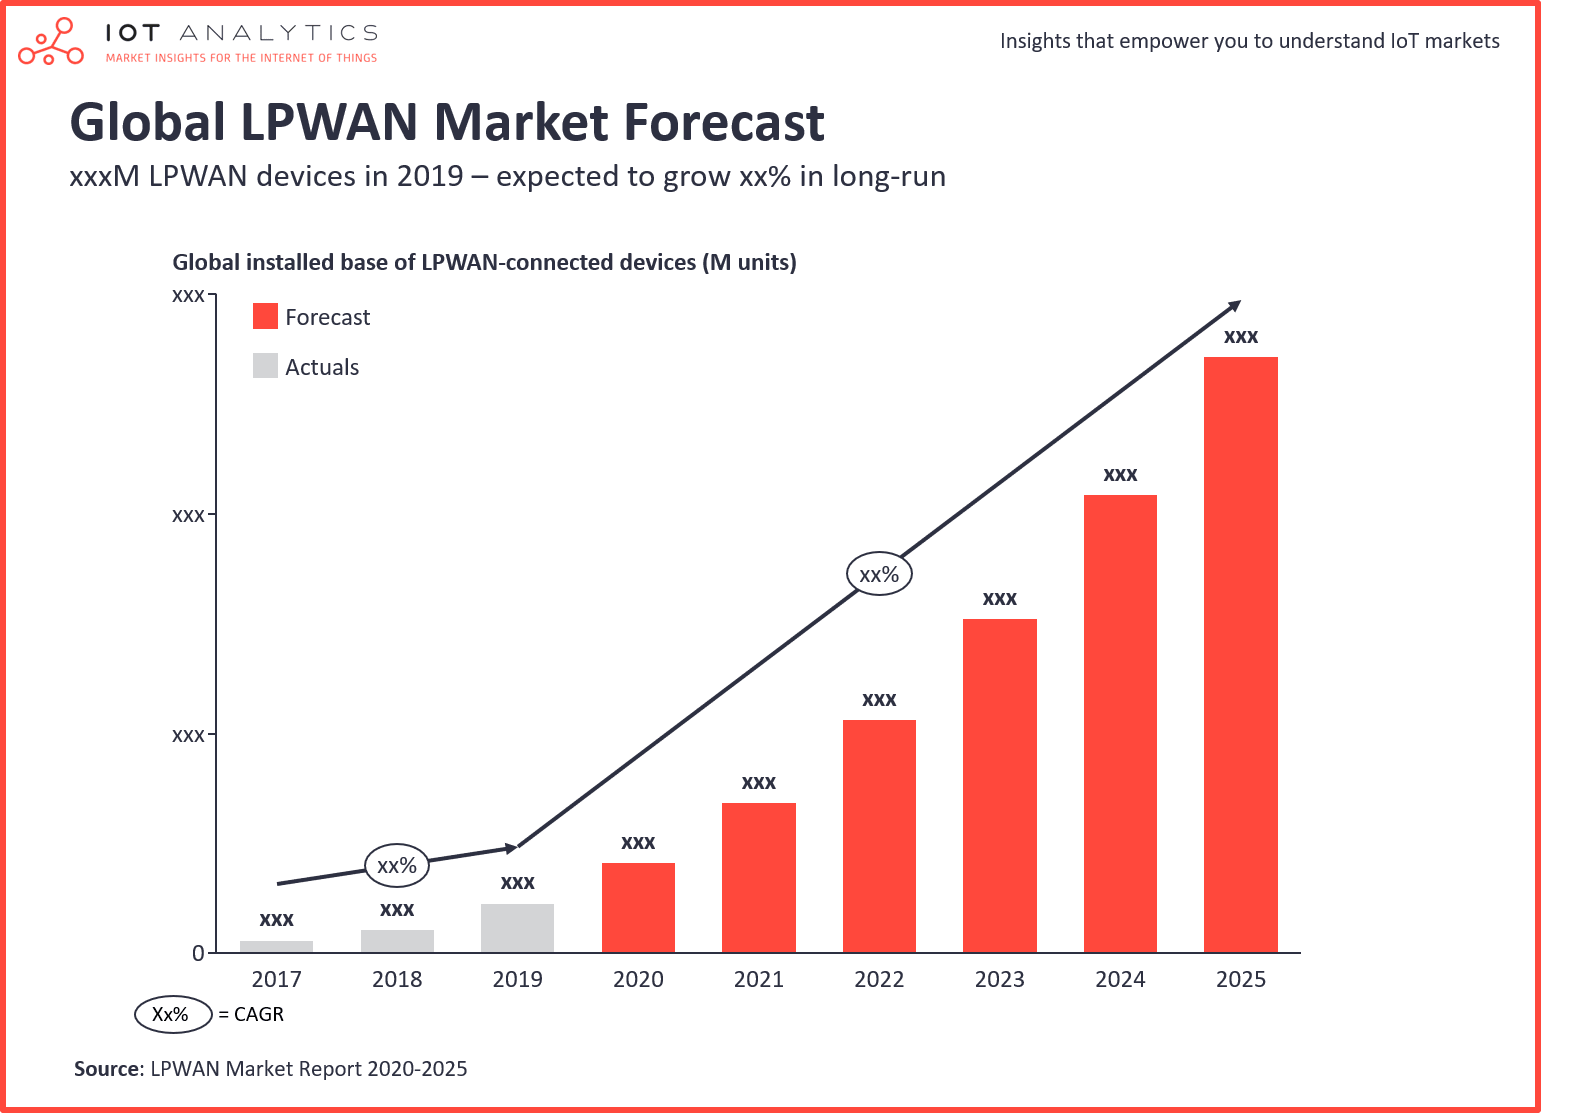 IoT Analytics - Global LPWAN Market 2020-2025